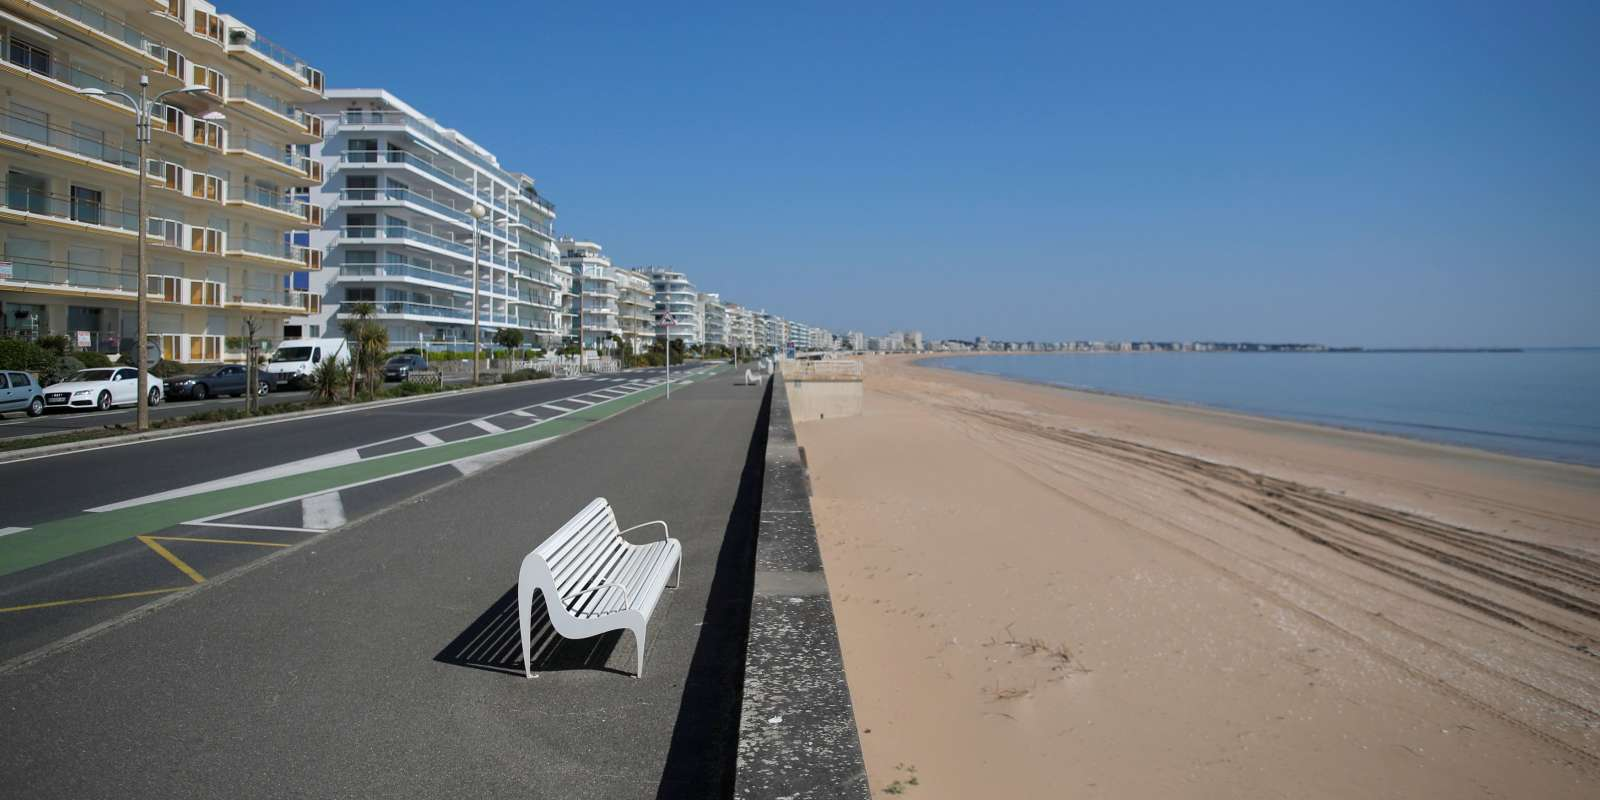 A view shows a deserted beach in La Baule during a lockdown imposed to slow the spread of the coronavirus disease (COVID-19) in France, April 10, 2020. REUTERS/Stephane Mahe